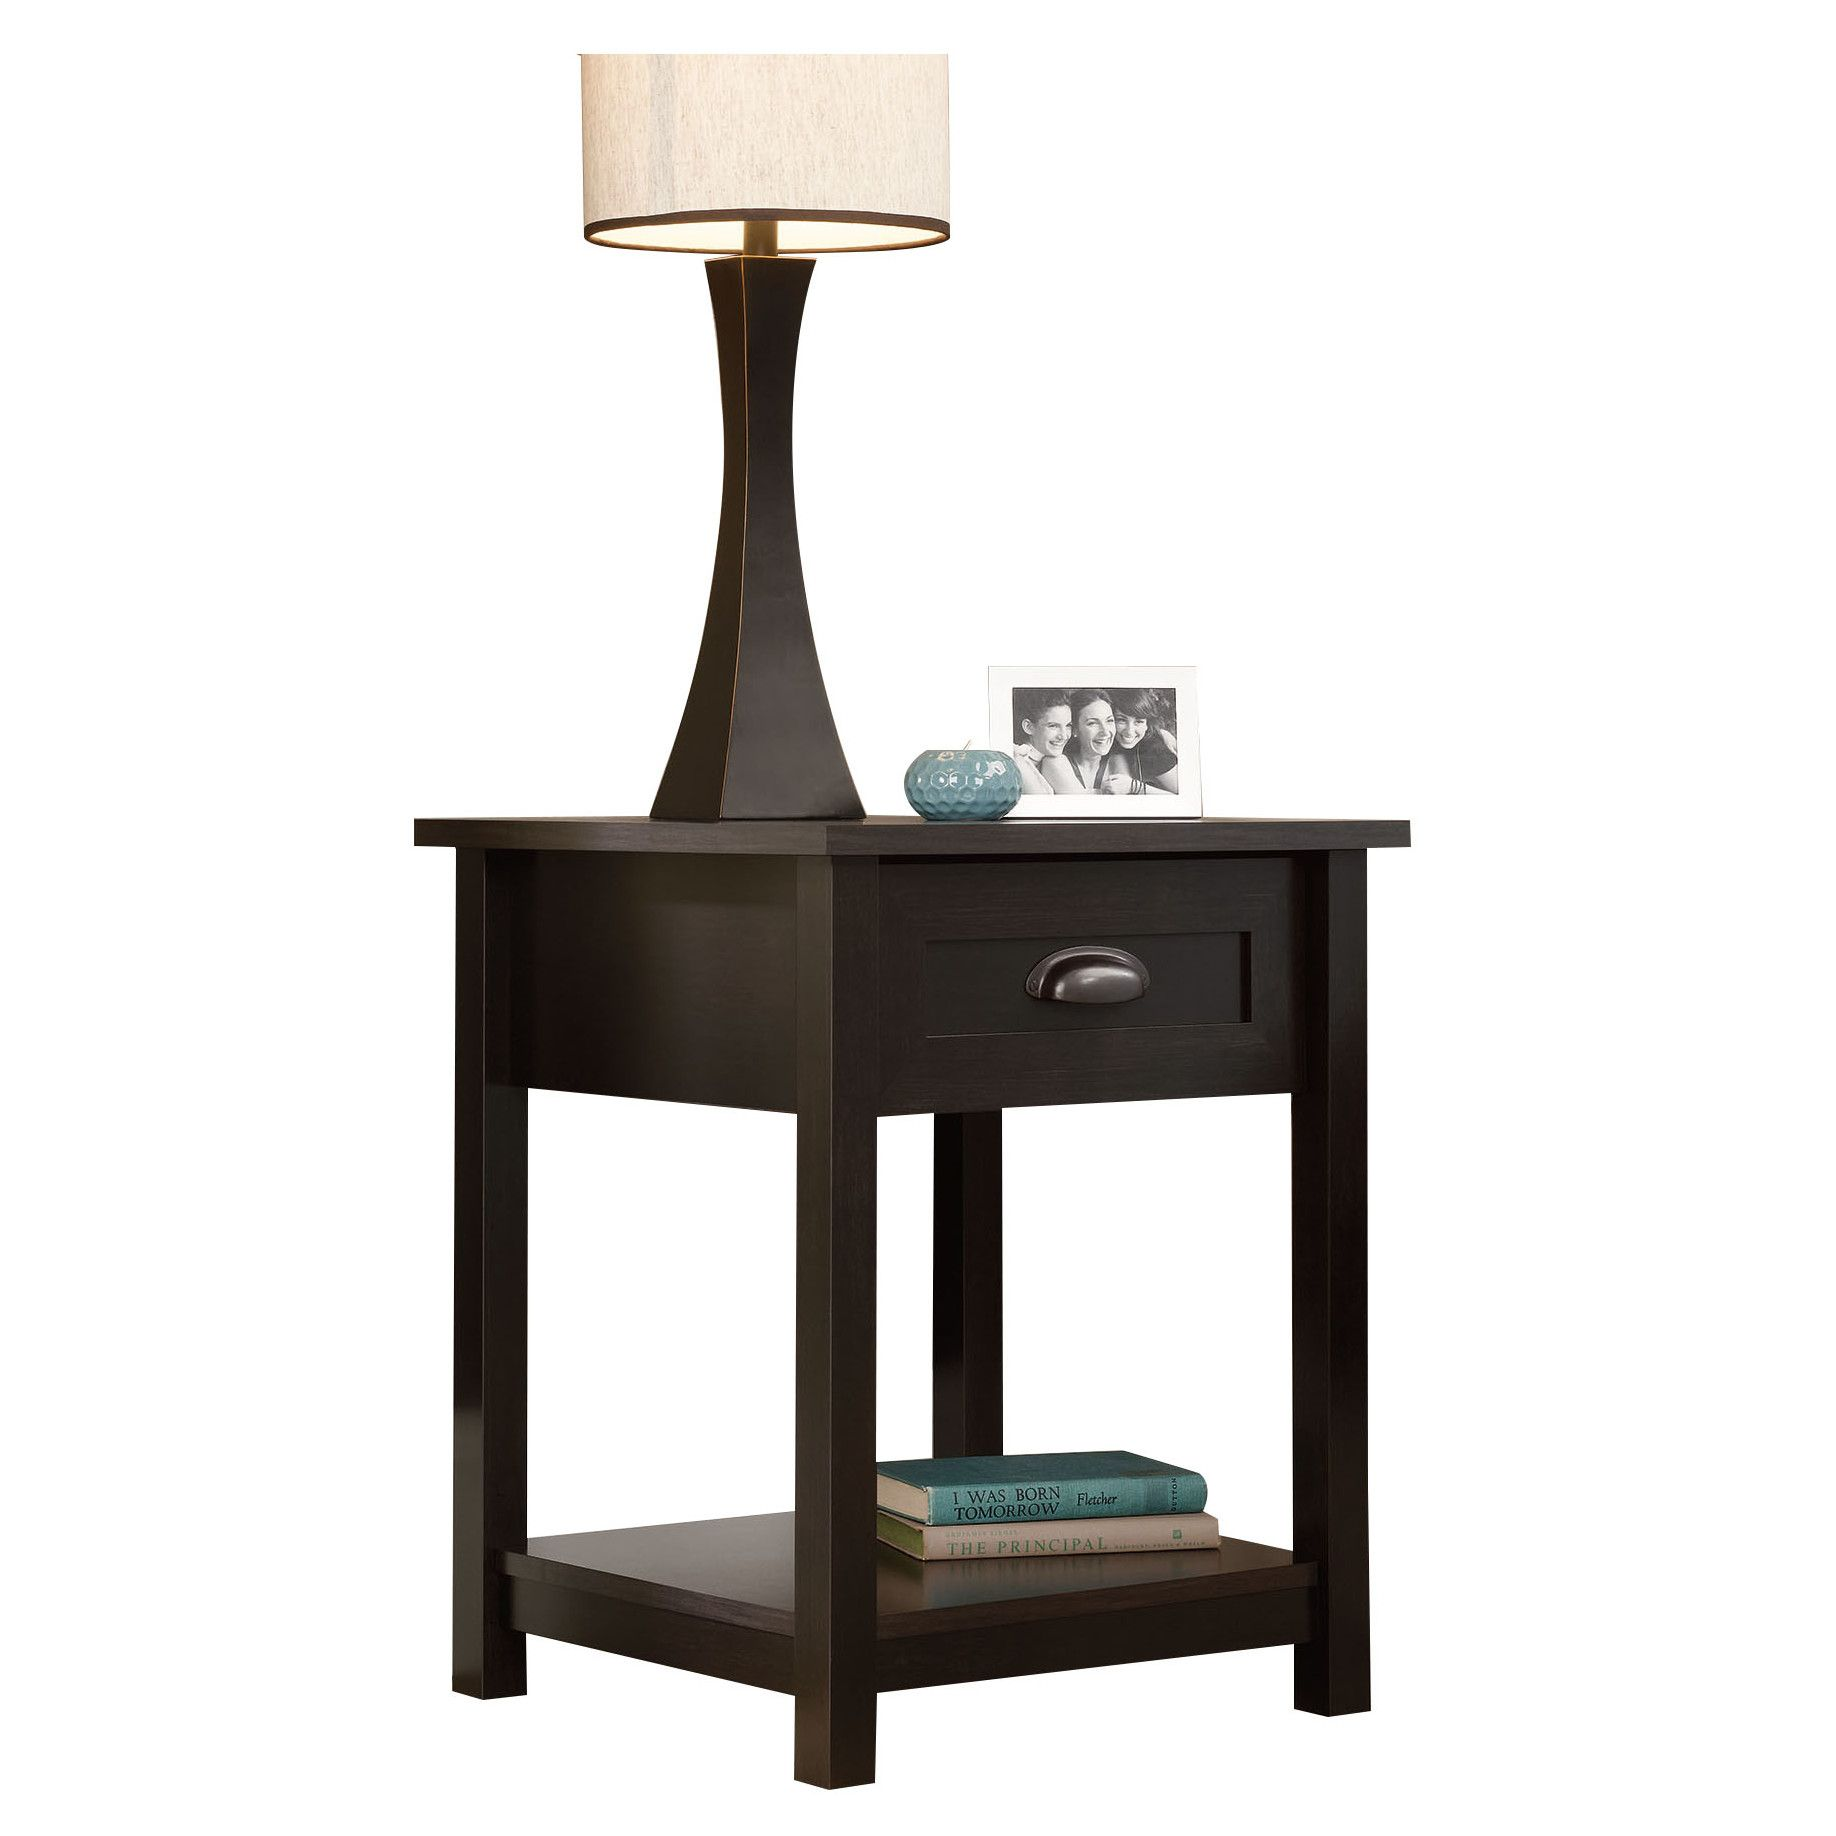 Darby Home Co Coombs 1 Drawer Nightstand Storage